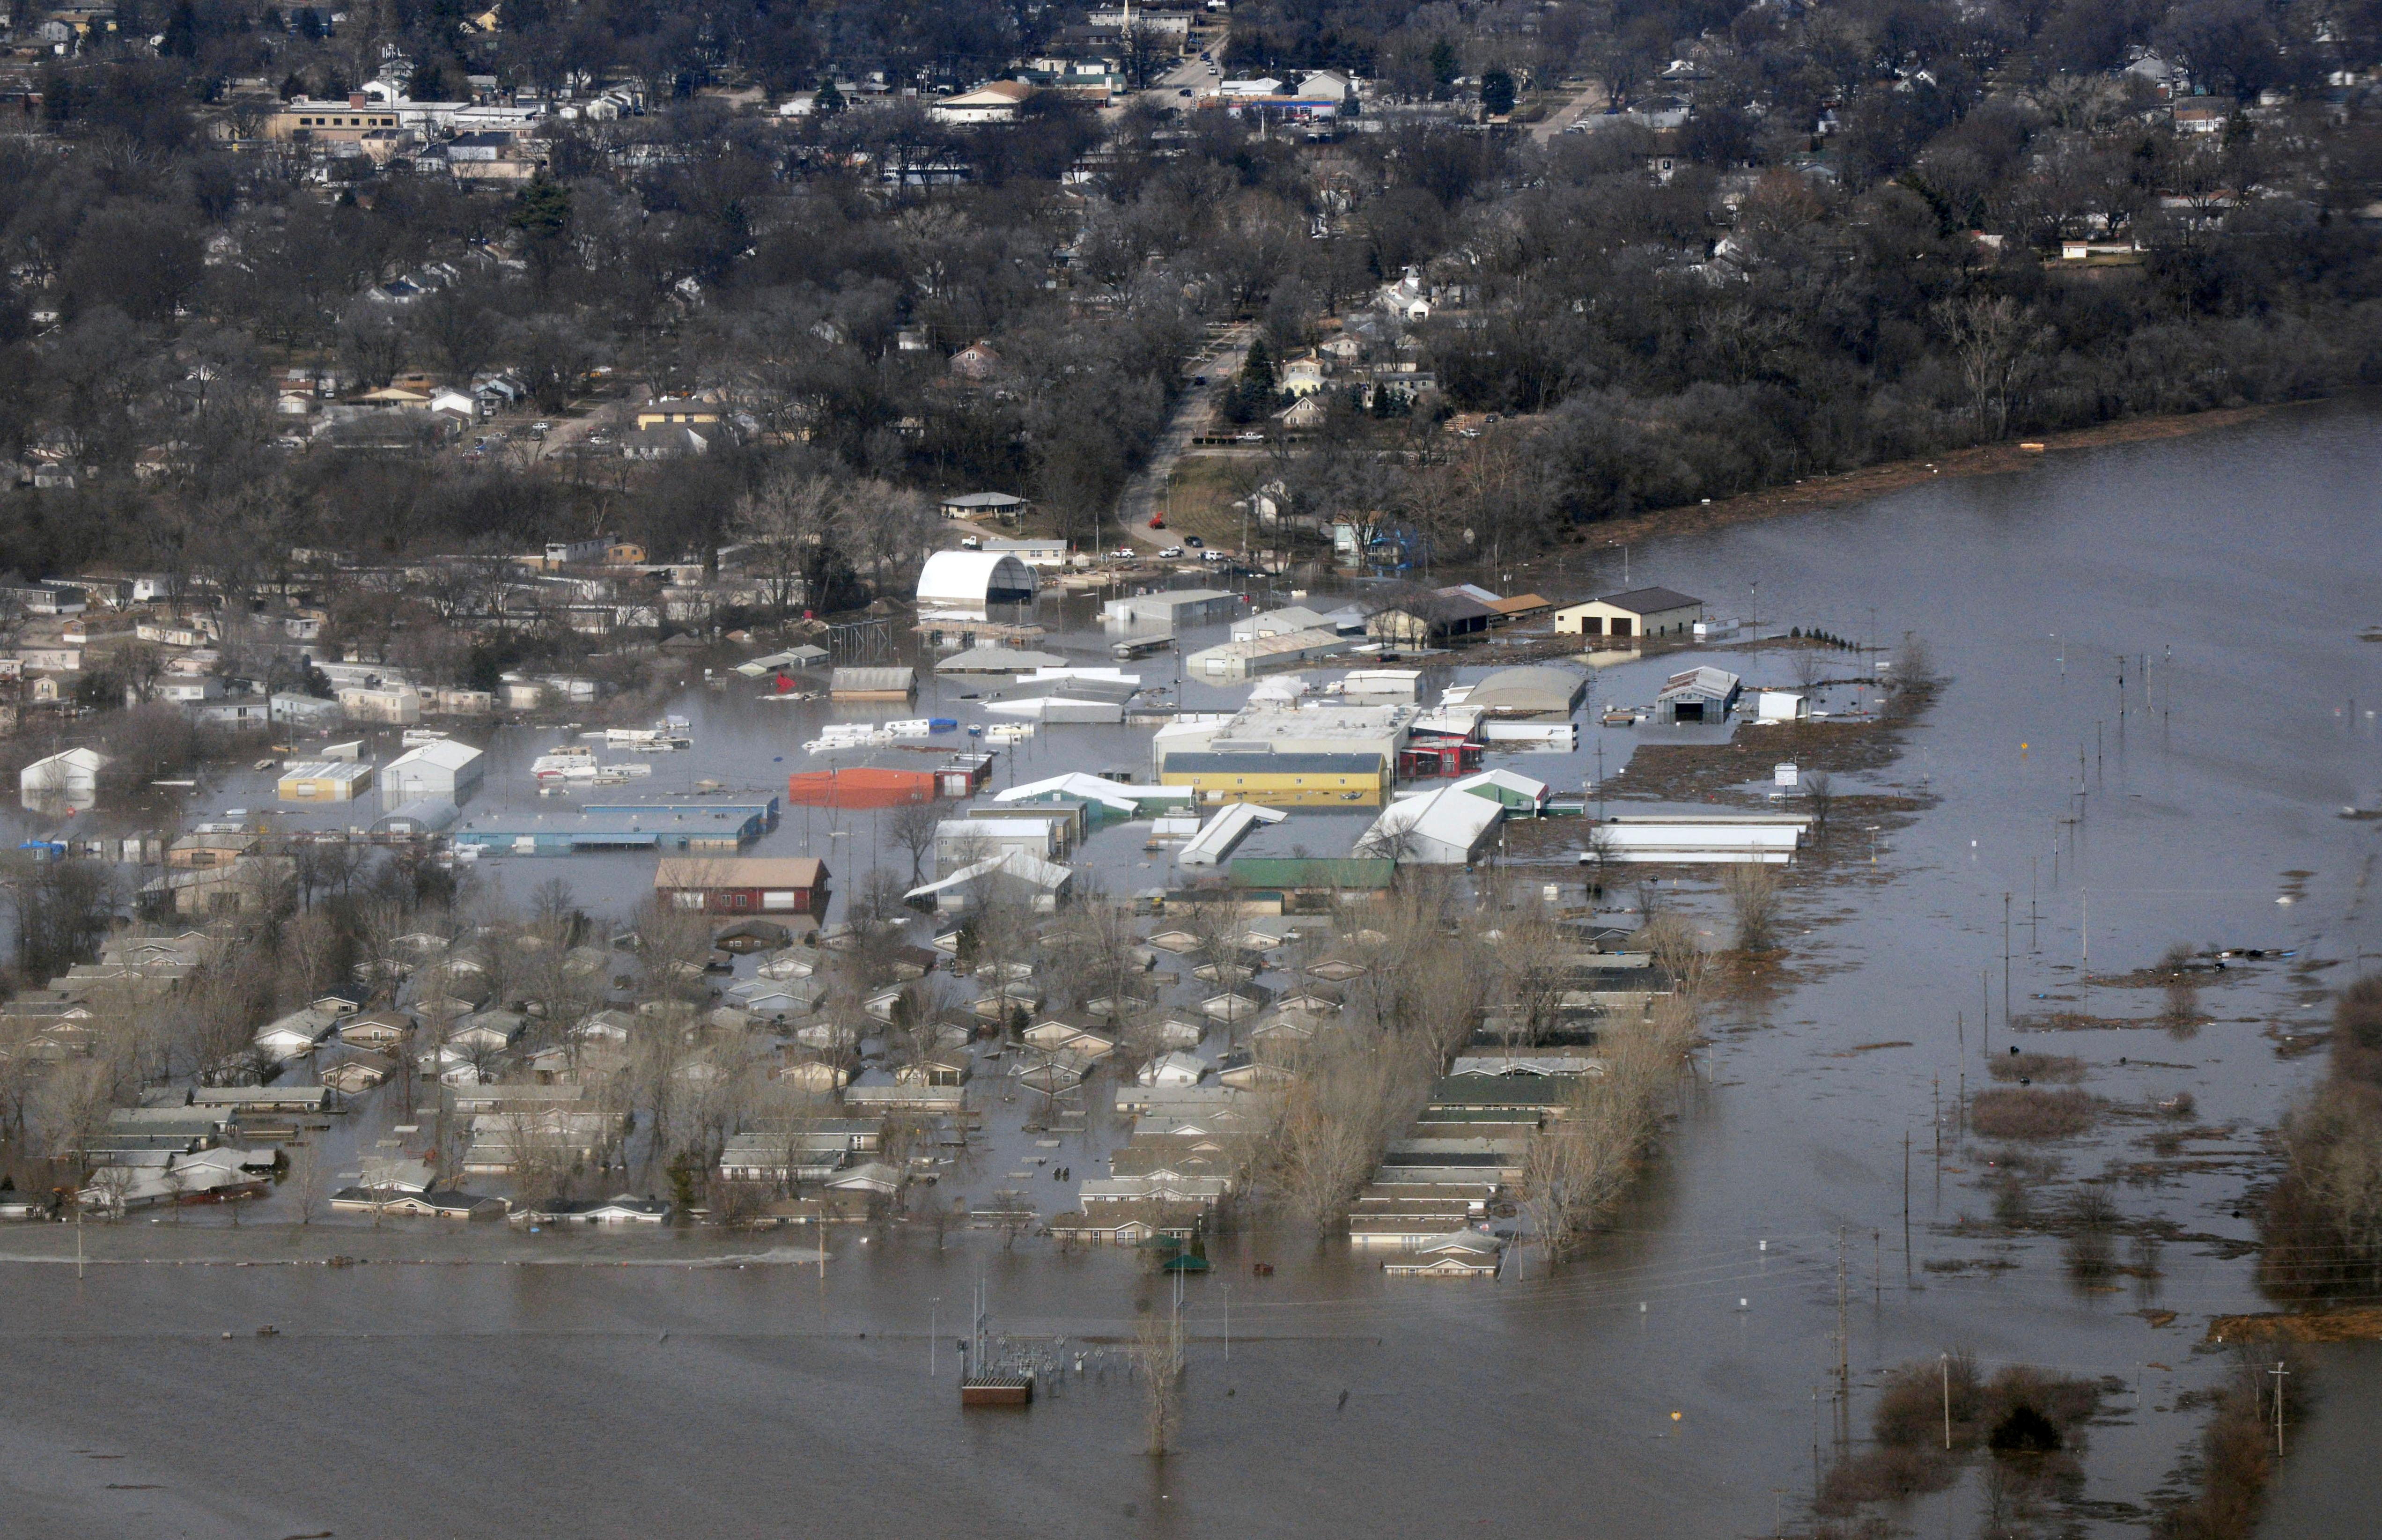 This March 17, 2019 photo released by the U.S. Air Force shows an aerial view of Areas surrounding Offutt Air Force Base affected by flood waters in Neb.{ } (Tech. Sgt. Rachelle Blake/The U.S. Air Force via AP)